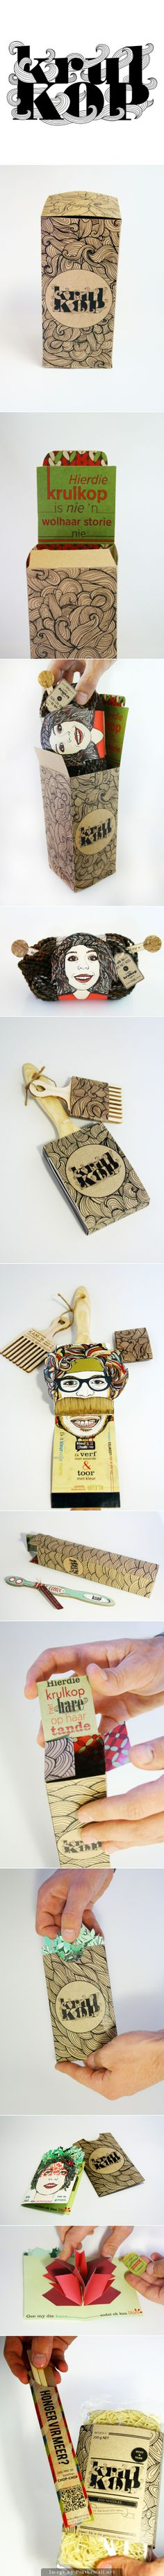 Lesson to be learned in #packaging yourself PD - created via https://www.behance.net/gallery/Direct-Mail-Self-Promotion/8279721